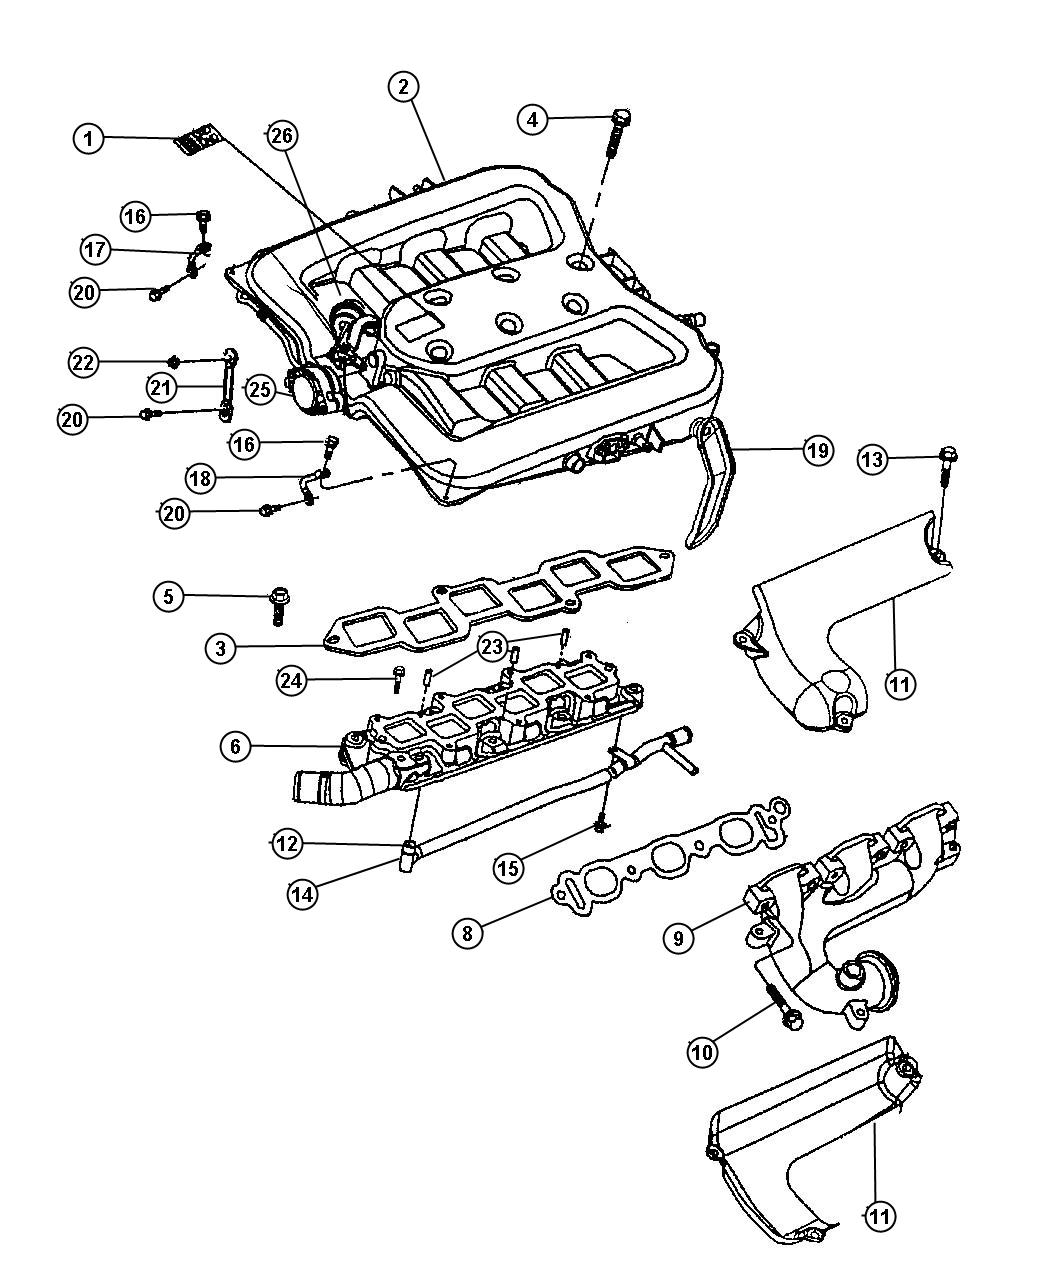 diagram of 2000 dodge intrepid engine